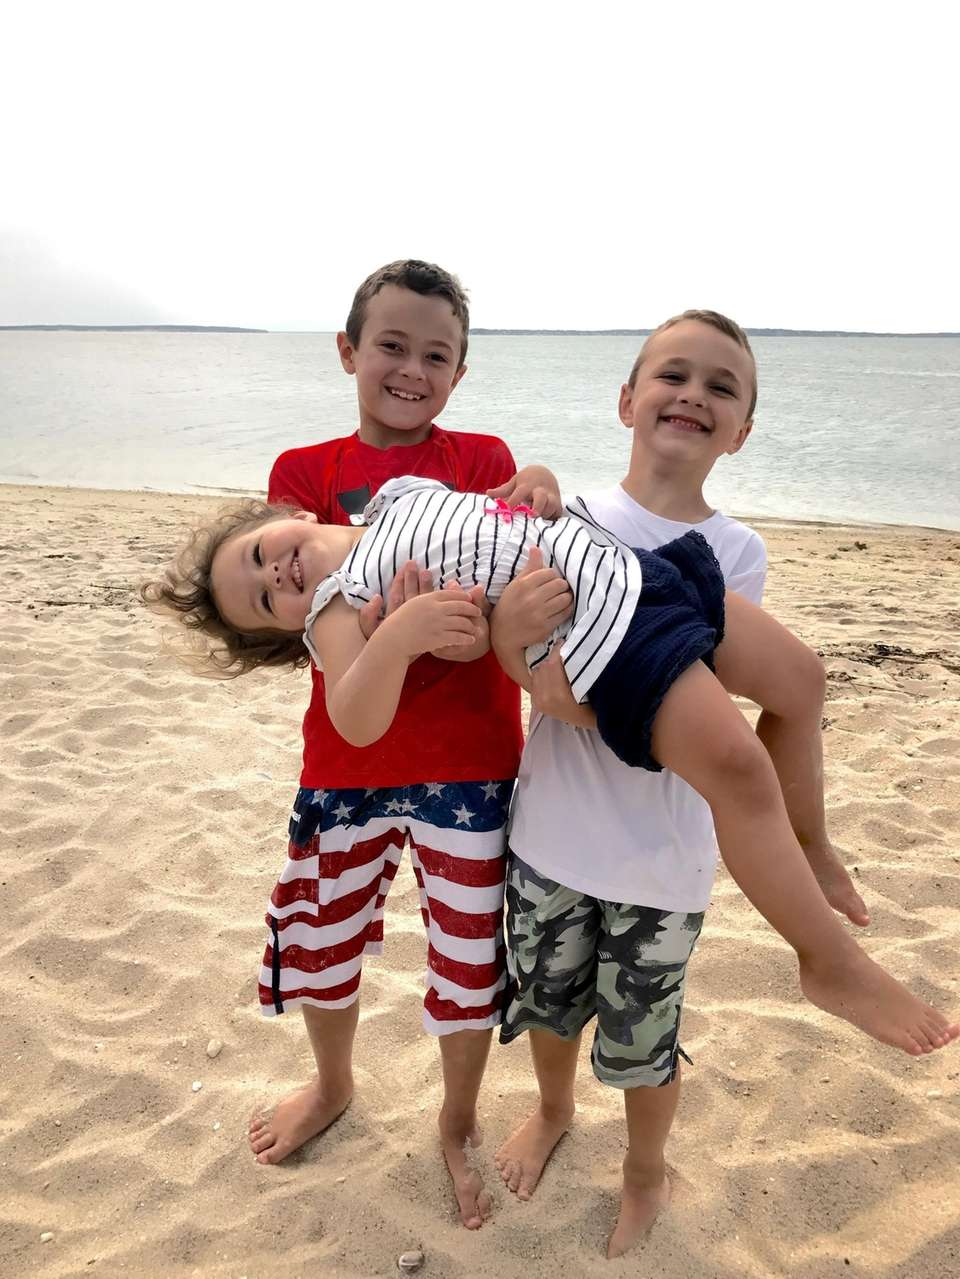 My three children goofing around at the beach